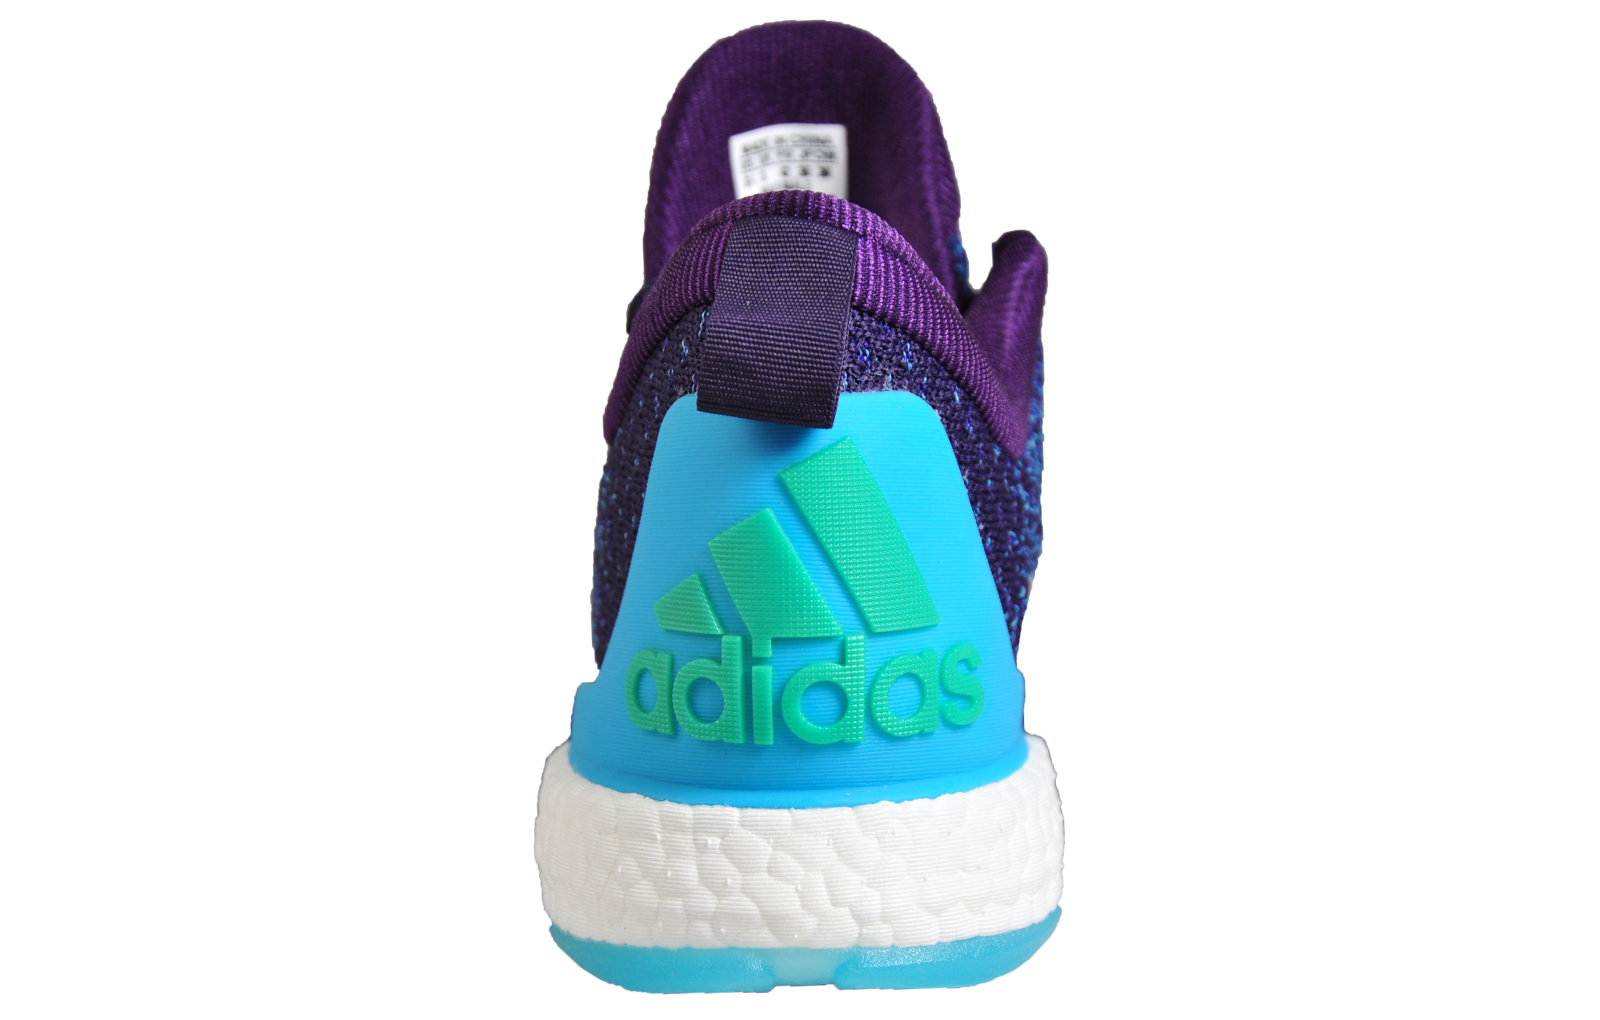 new concept a066d 6267c Adidas Crazylight Boost 2.5 Low Men s Premium Performance Court Basketball  Trainers. Manufacturers code  F37147